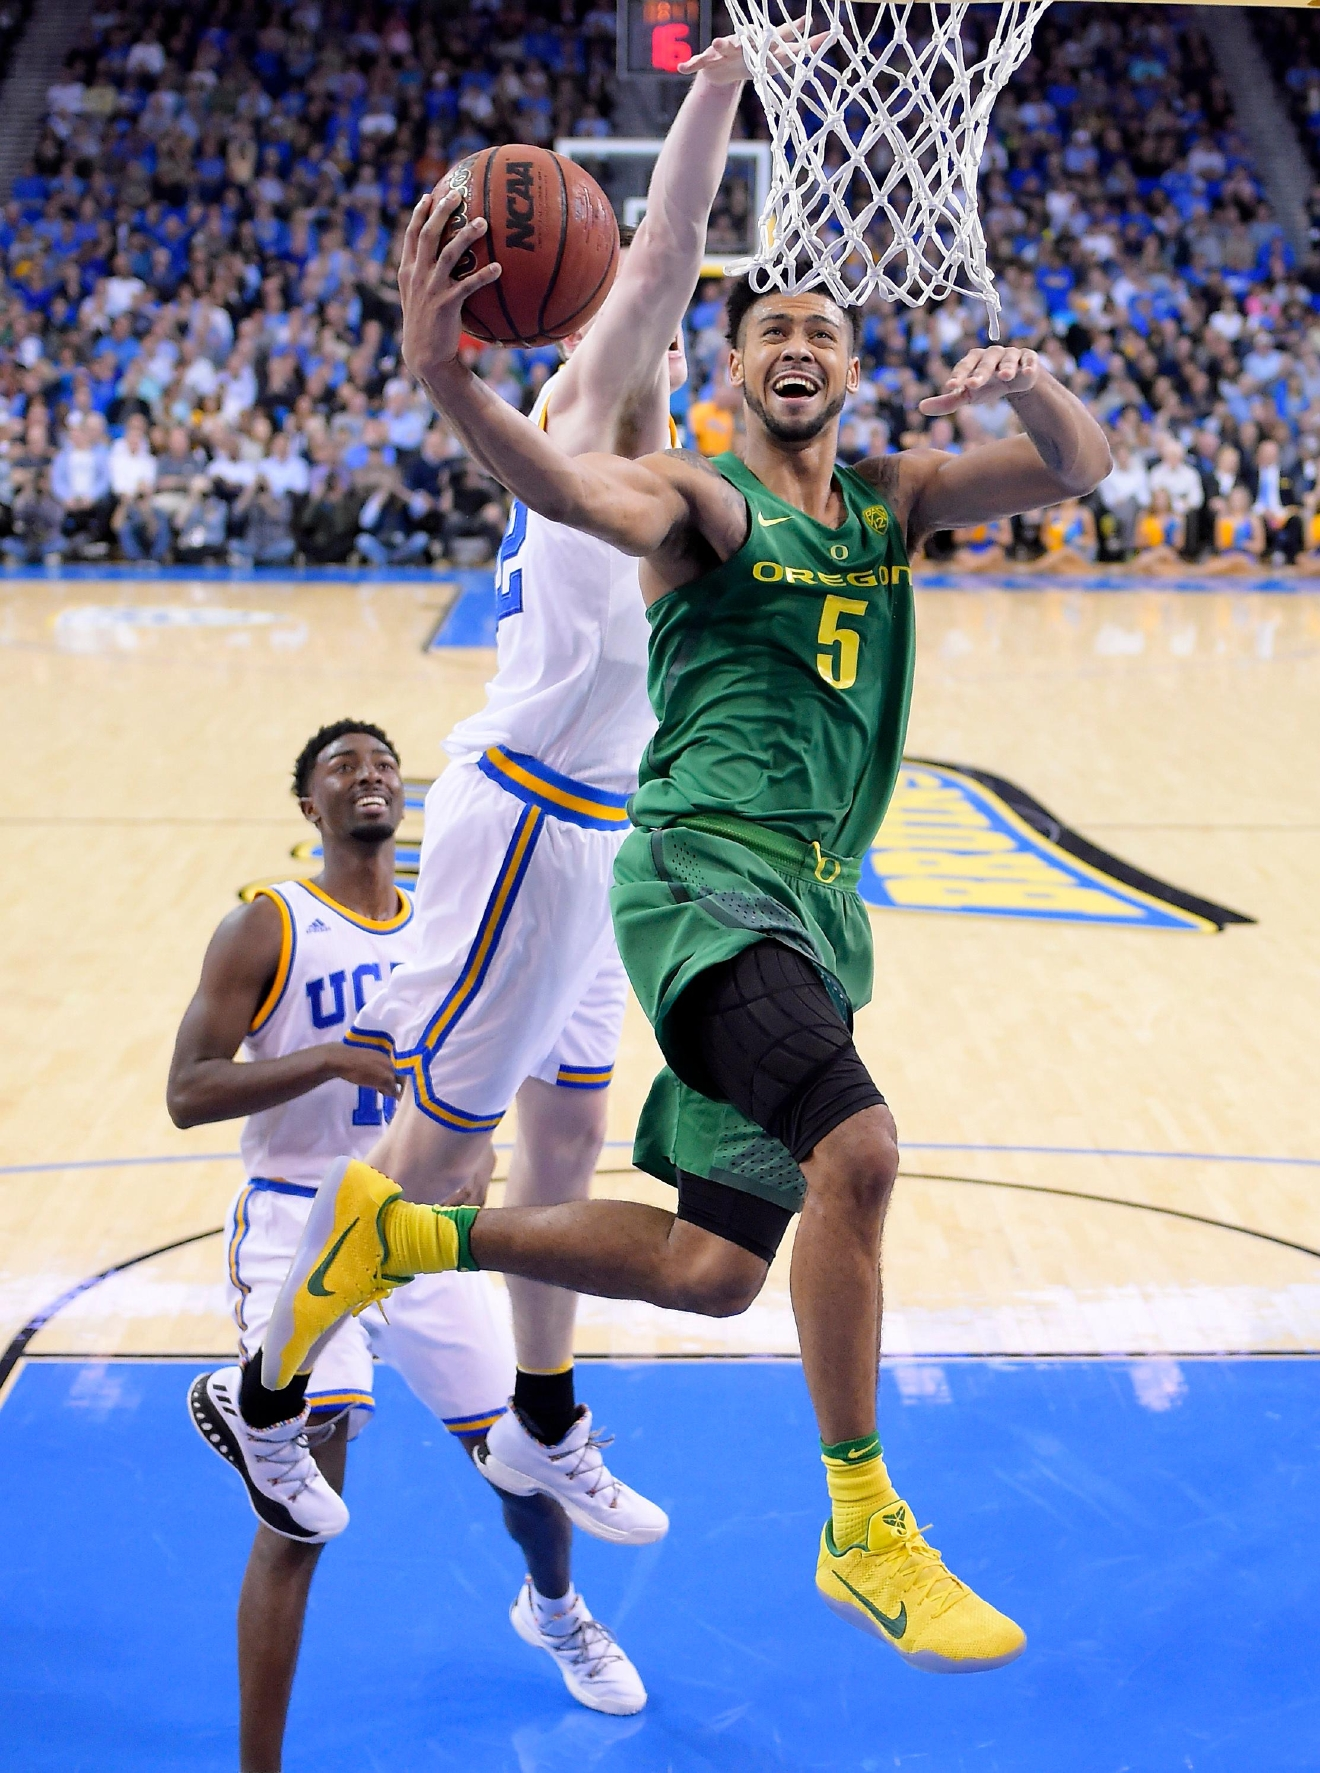 Oregon guard Tyler Dorsey, right, shoots as UCLA forward TJ Leaf defends during the second half of an NCAA college basketball game, Thursday, Feb. 9, 2017, in Los Angeles. UCLA won 82-79. (AP Photo/Mark J. Terrill)